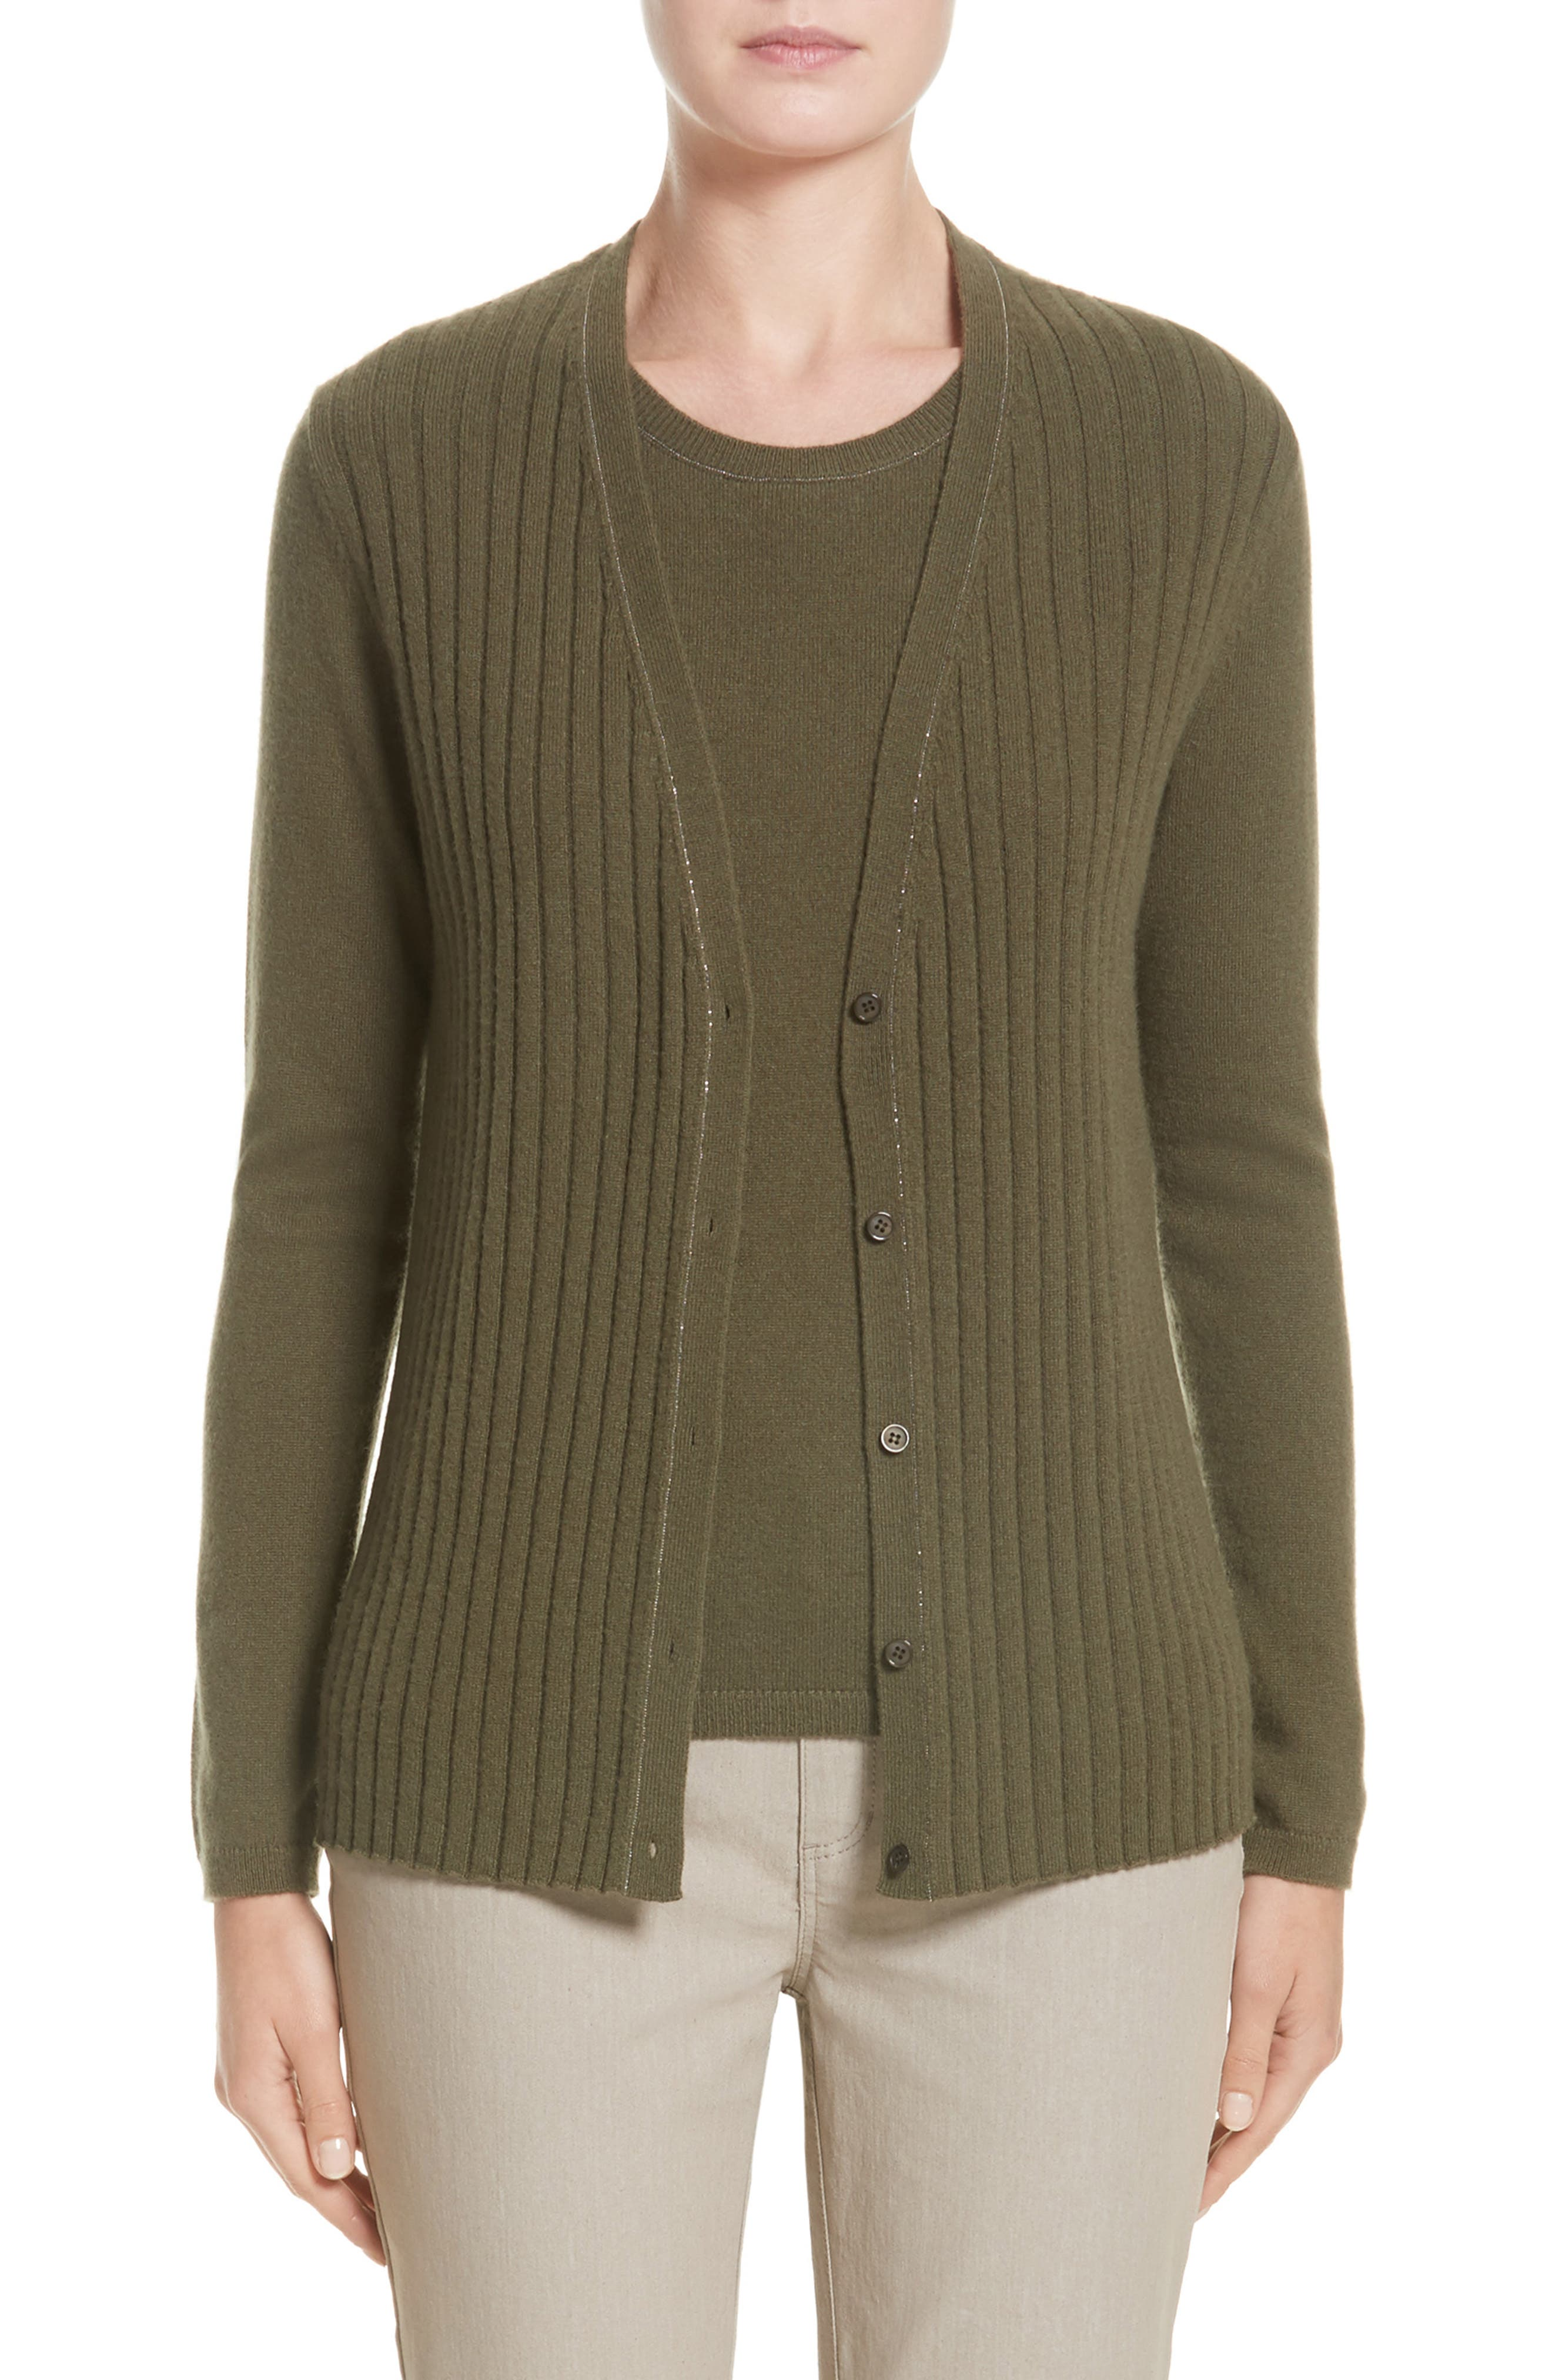 Lafayette 148 New York Chain Detail Cashmere Cardigan (Nordstrom Exclusive)